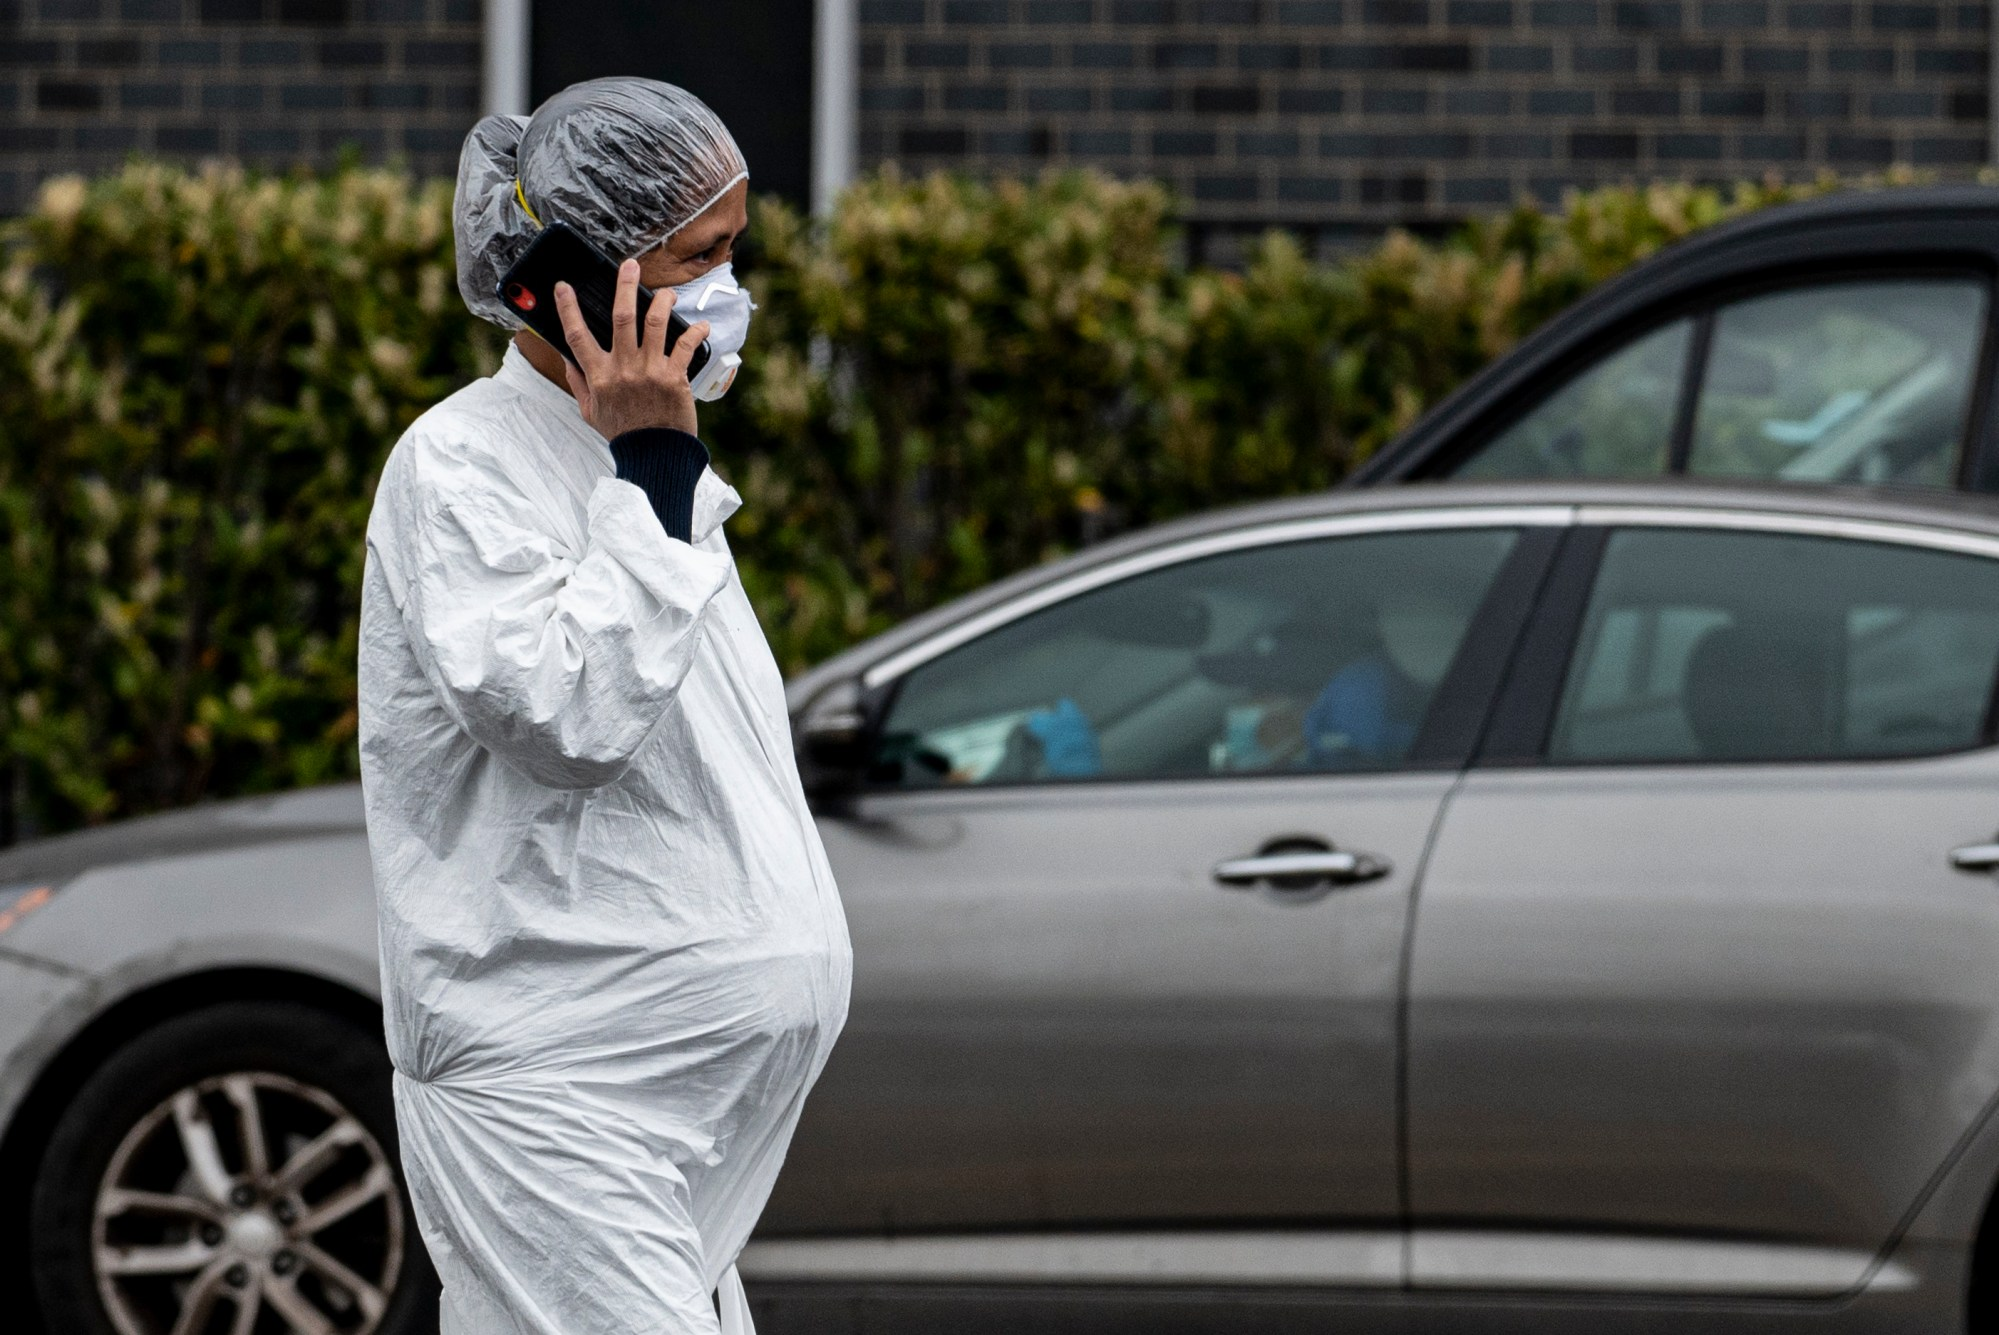 A pregnant woman wearing a hazmat suit and a mask walks in the streets in the Elmhurst neighbourhood of Queens on April 27, 2020 in New York City. (Johannes EISELE / AFP) (Photo by JOHANNES EISELE/AFP via Getty Images)